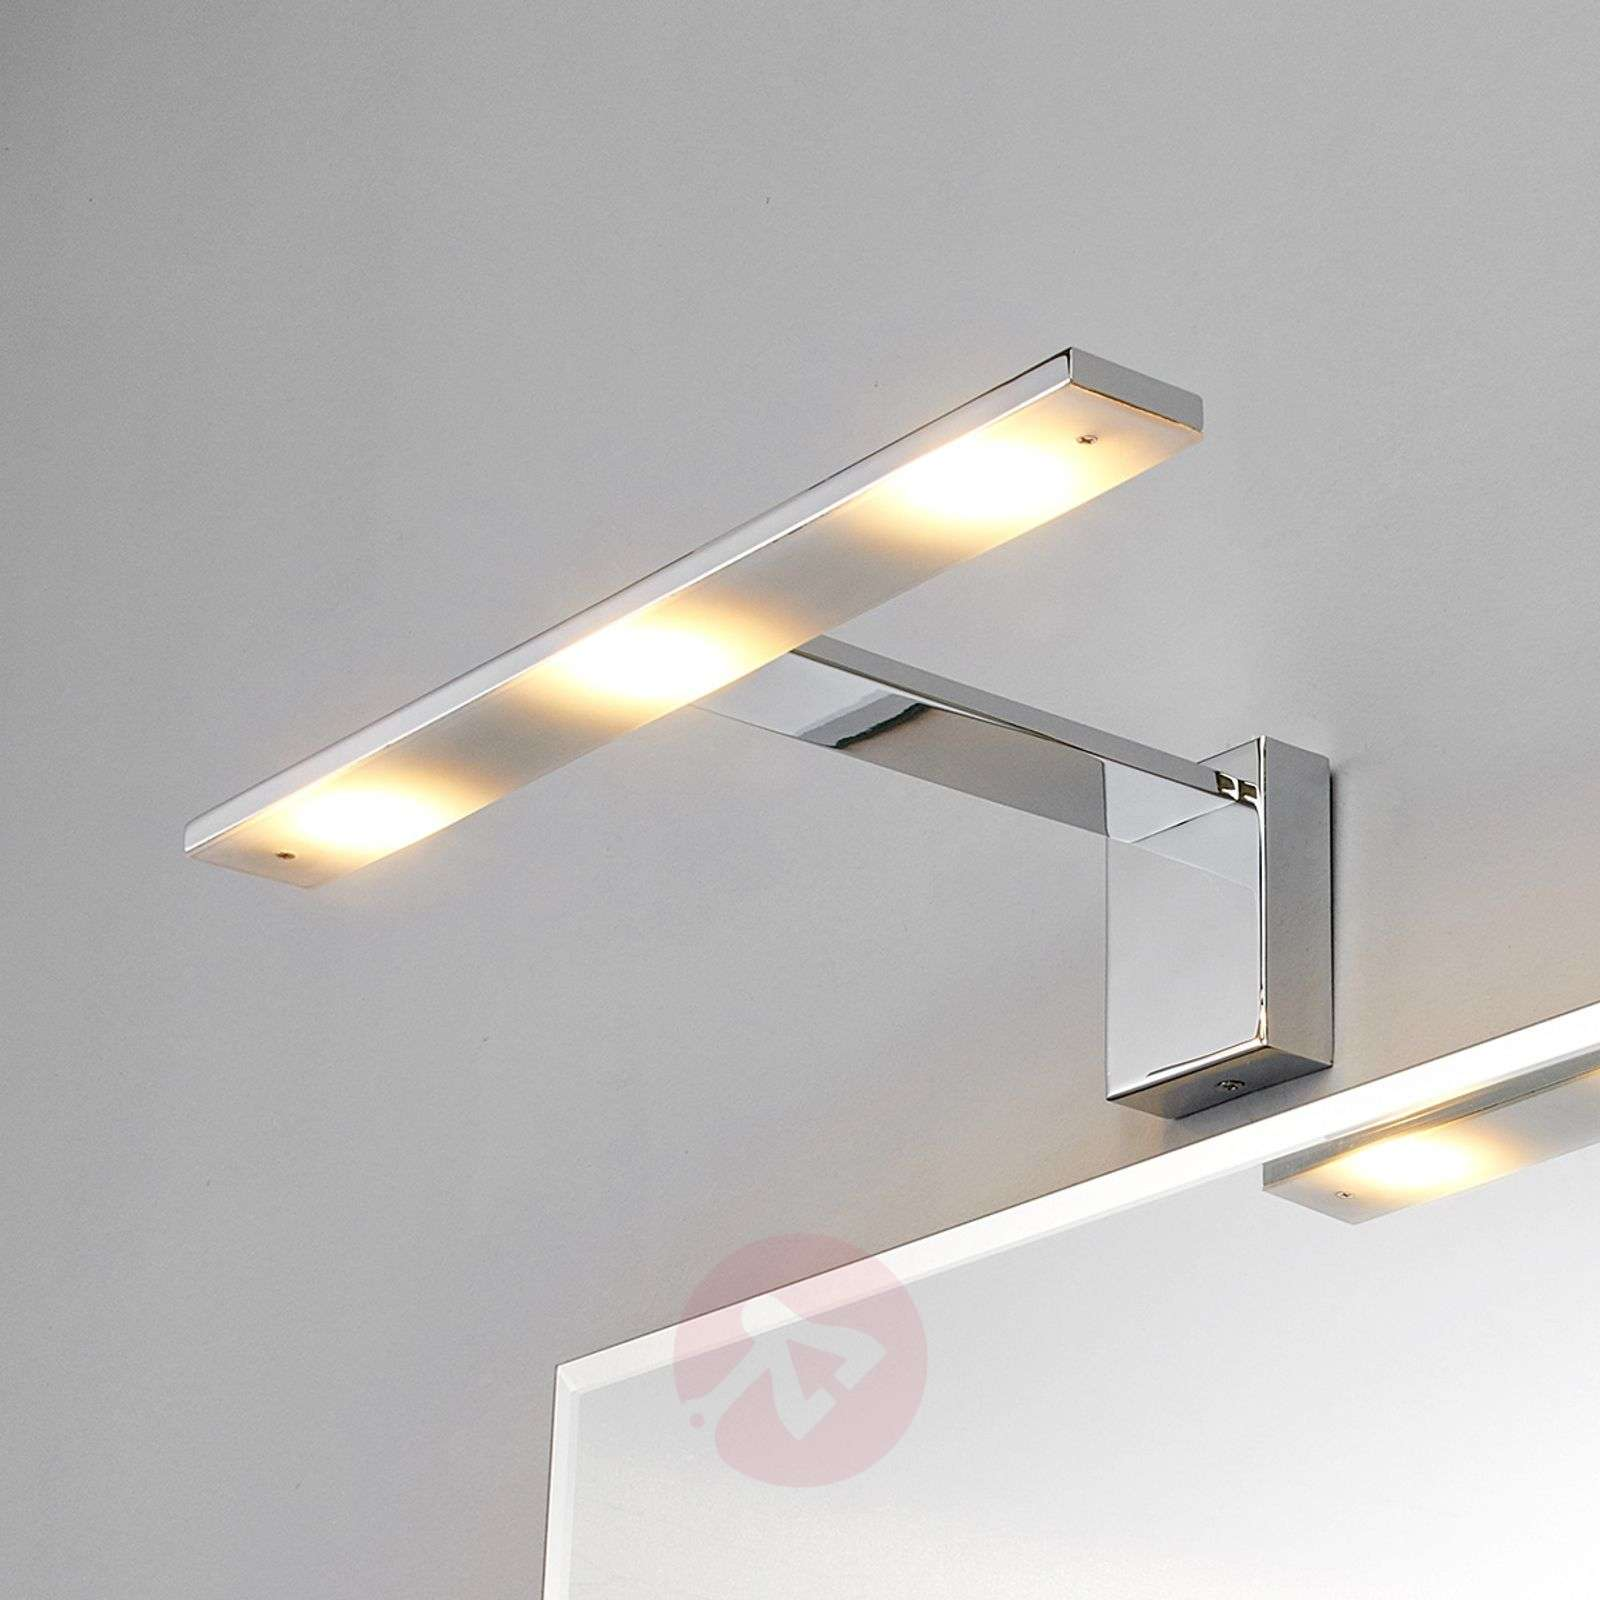 Chique LED-spiegellamp Lorik, chroom-9641010-01